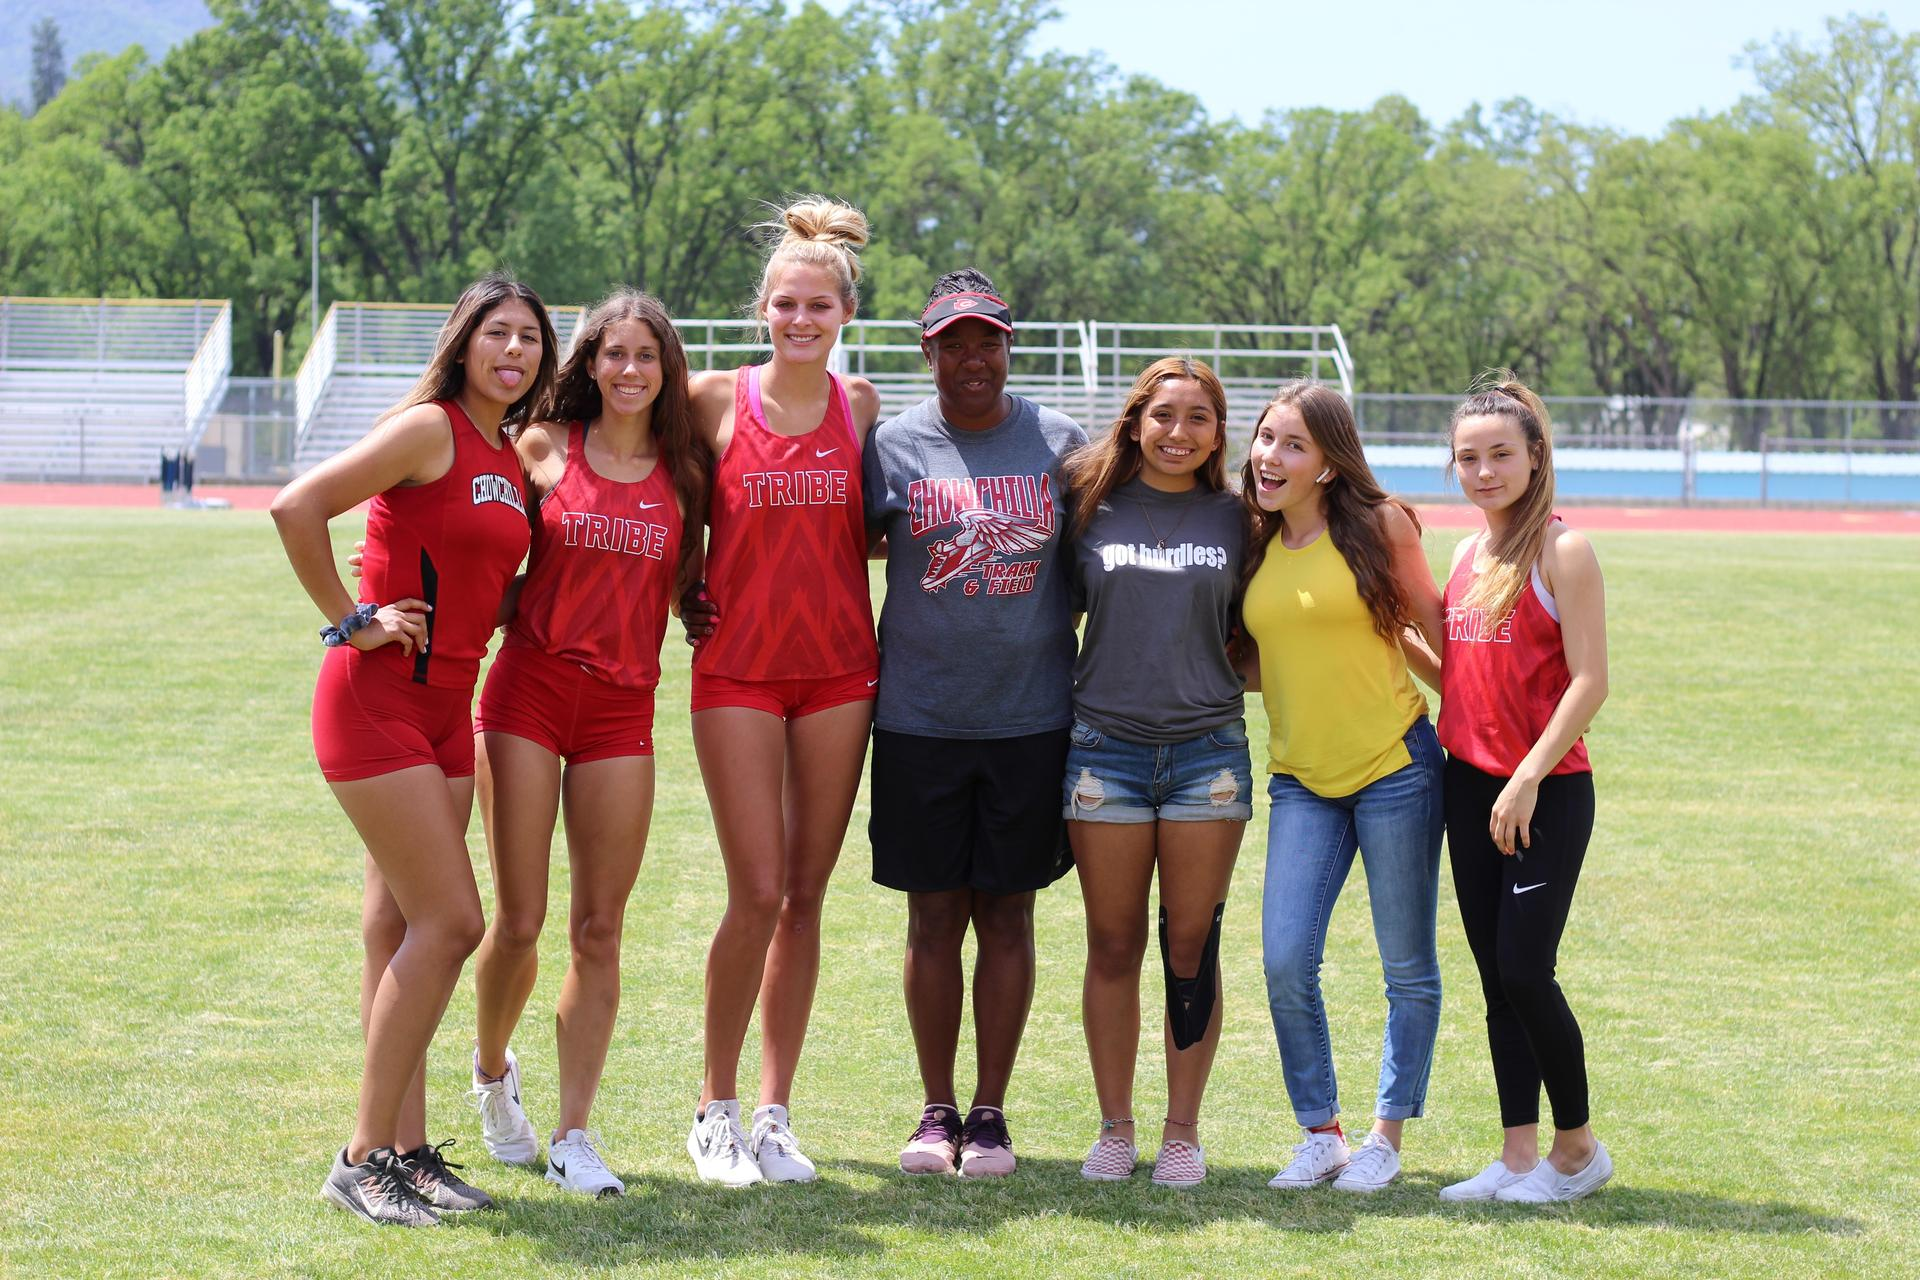 Coach and Senior Girls at track and Field NSL Championships